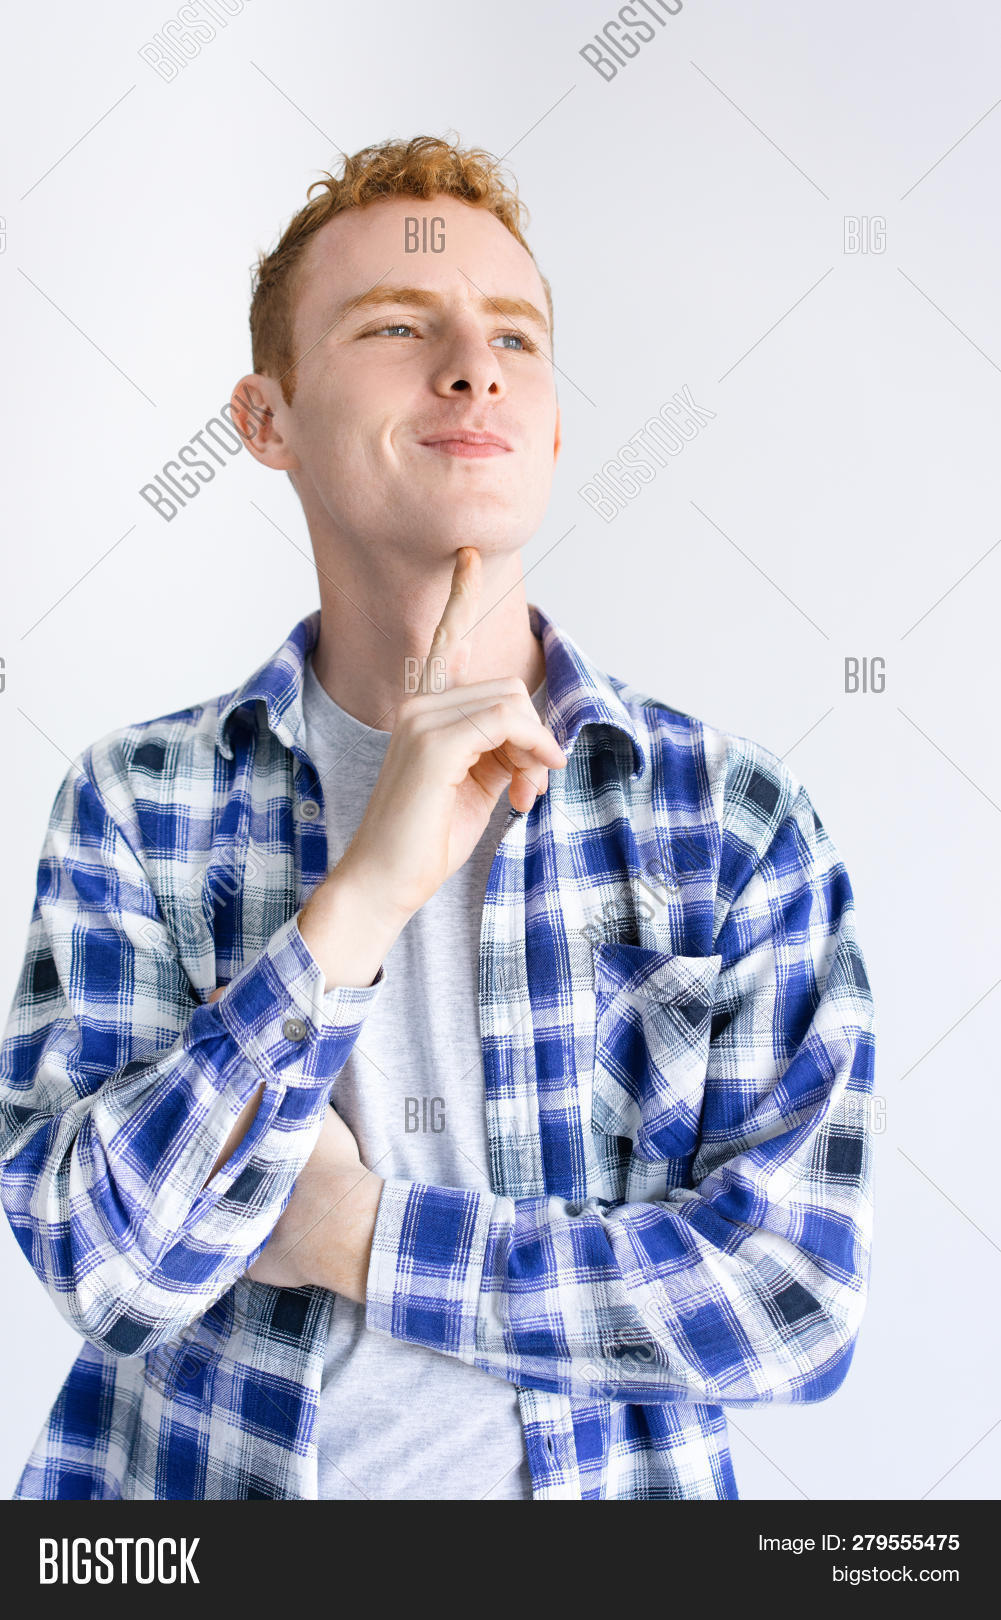 4203aa96 Dreamy young man smiling and touching chin. Arrogant guy wearing chequered  shirt and looking away. Anticipation concept. Isolated front view on white  ...